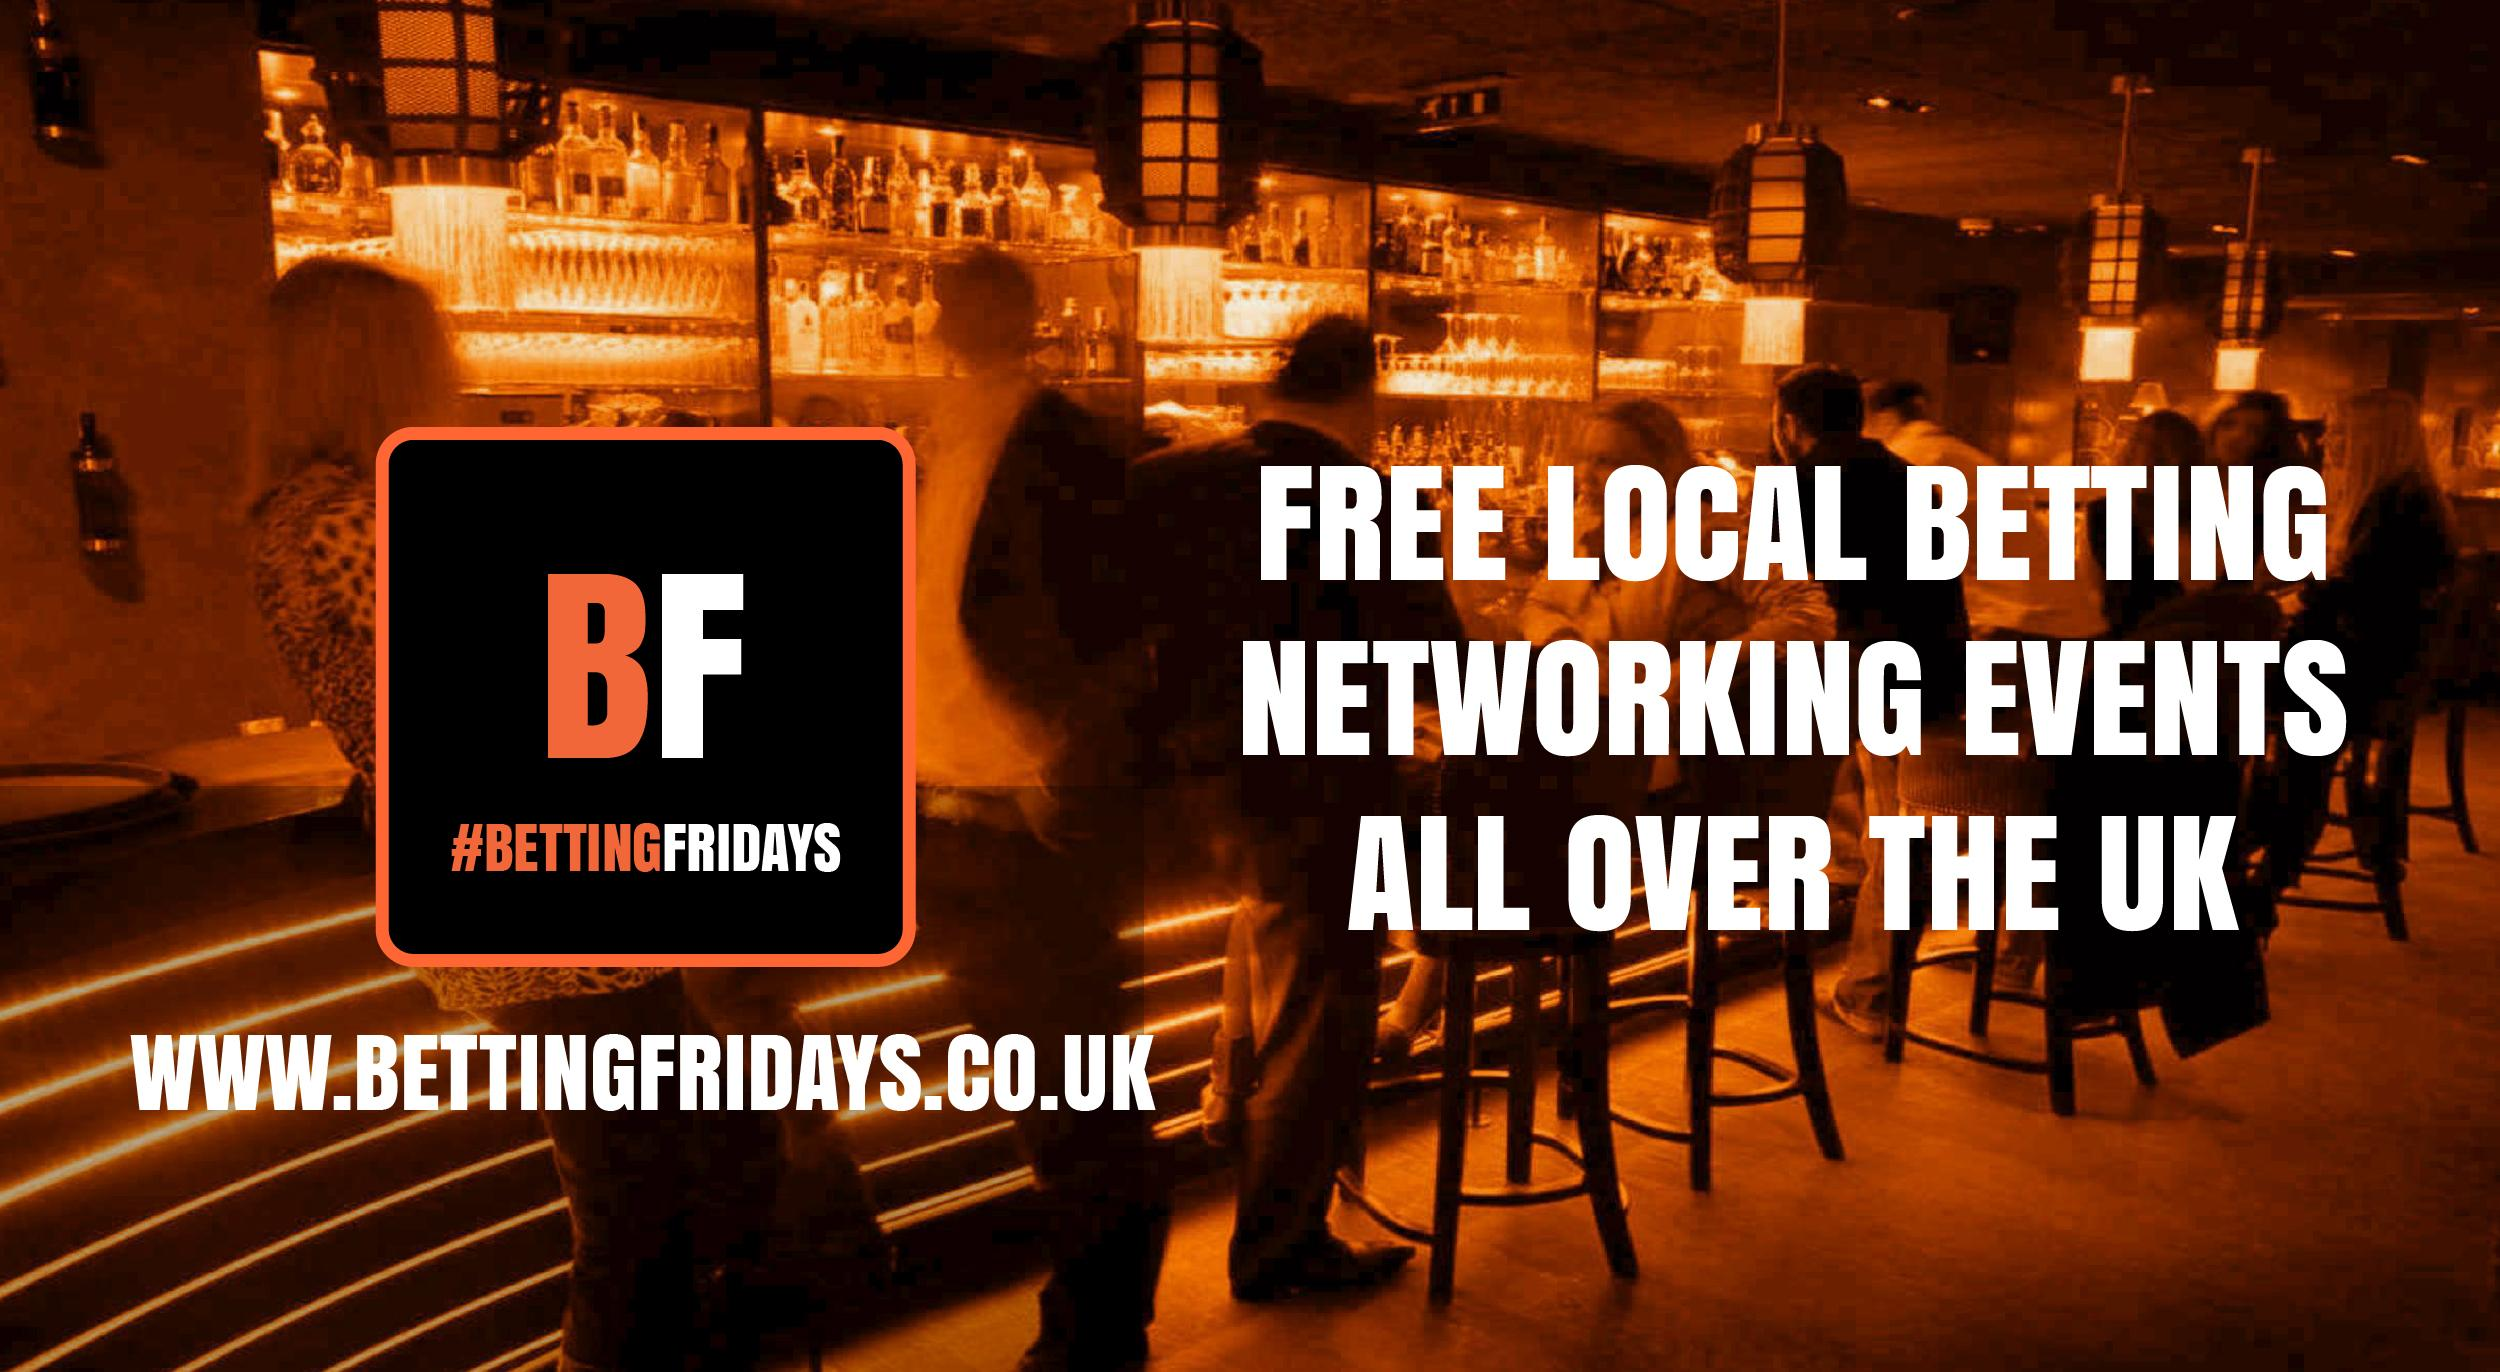 Betting Fridays! Free betting networking event in West Kirby